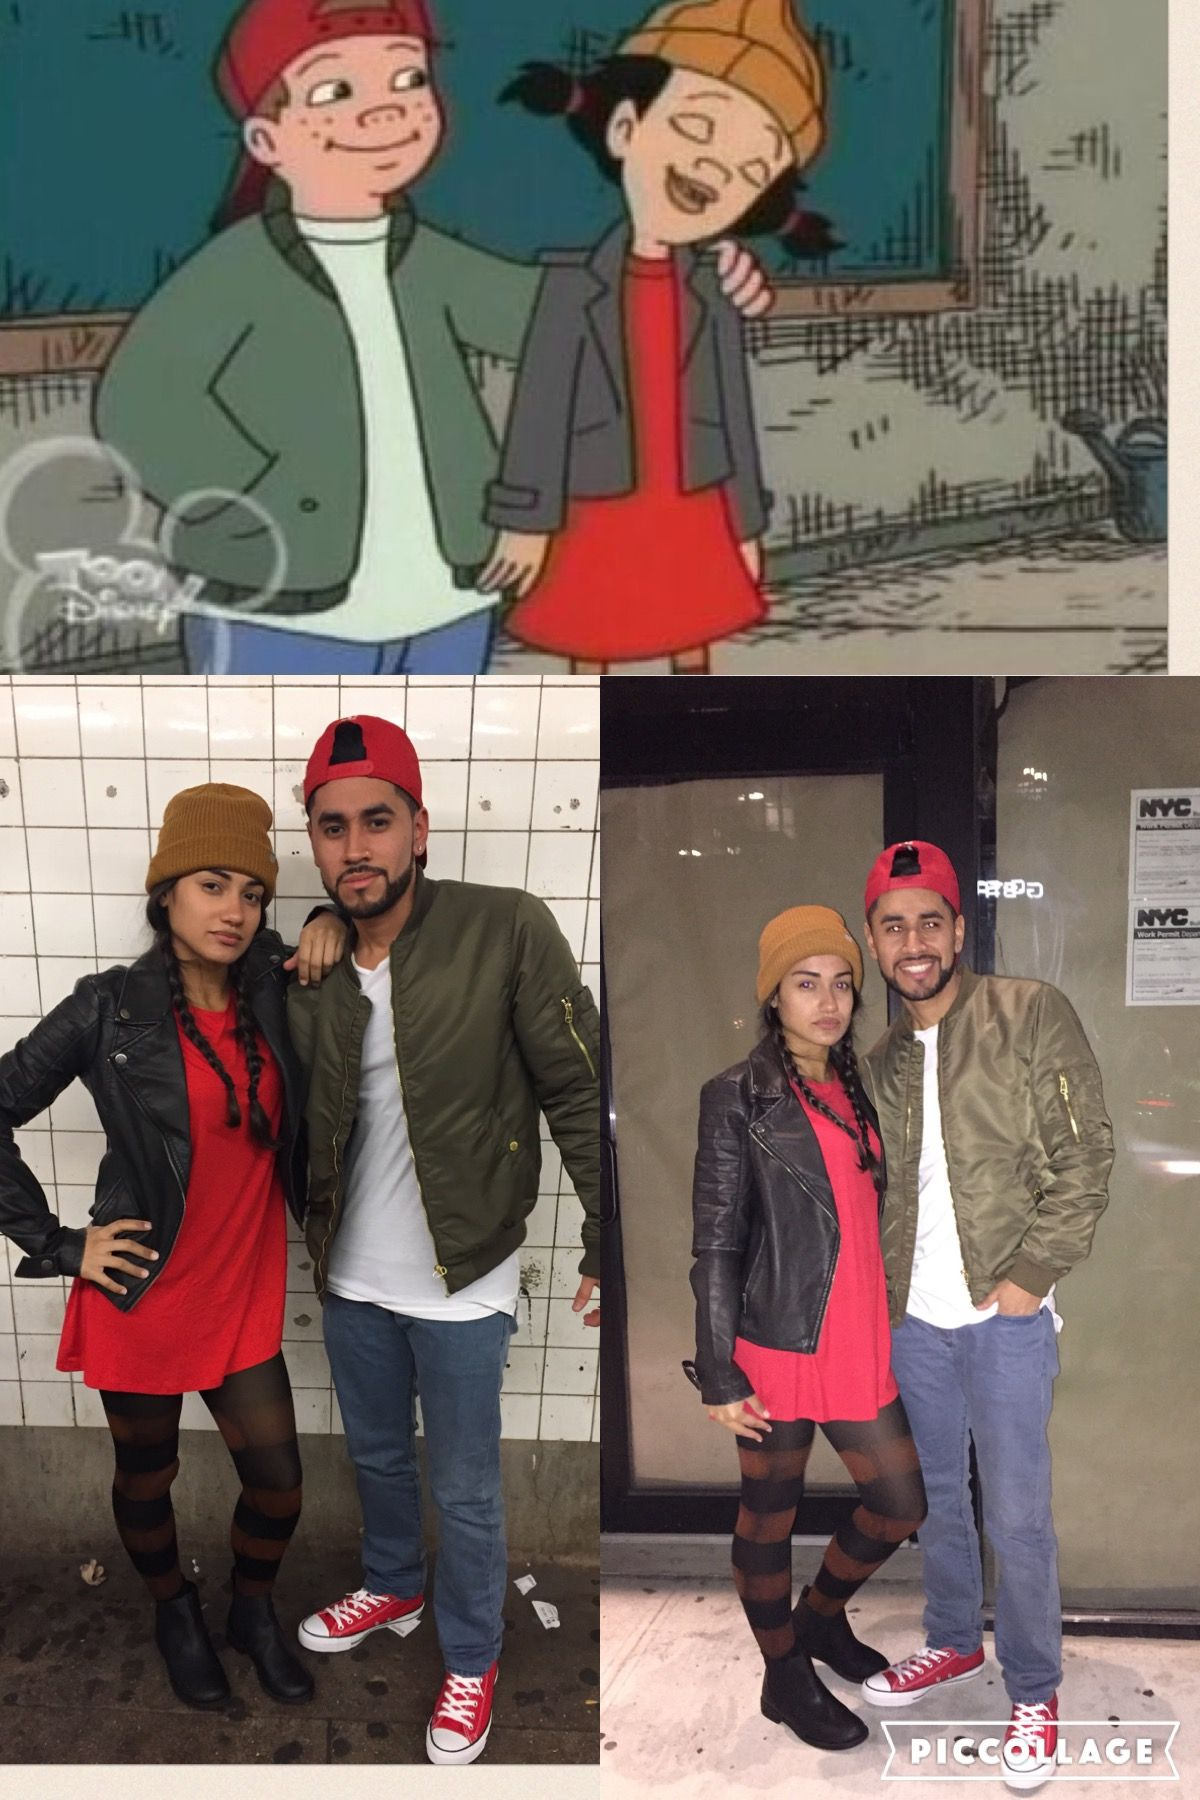 recess: schools out. halloween 2016, spinelli and tj | ideas in 2018